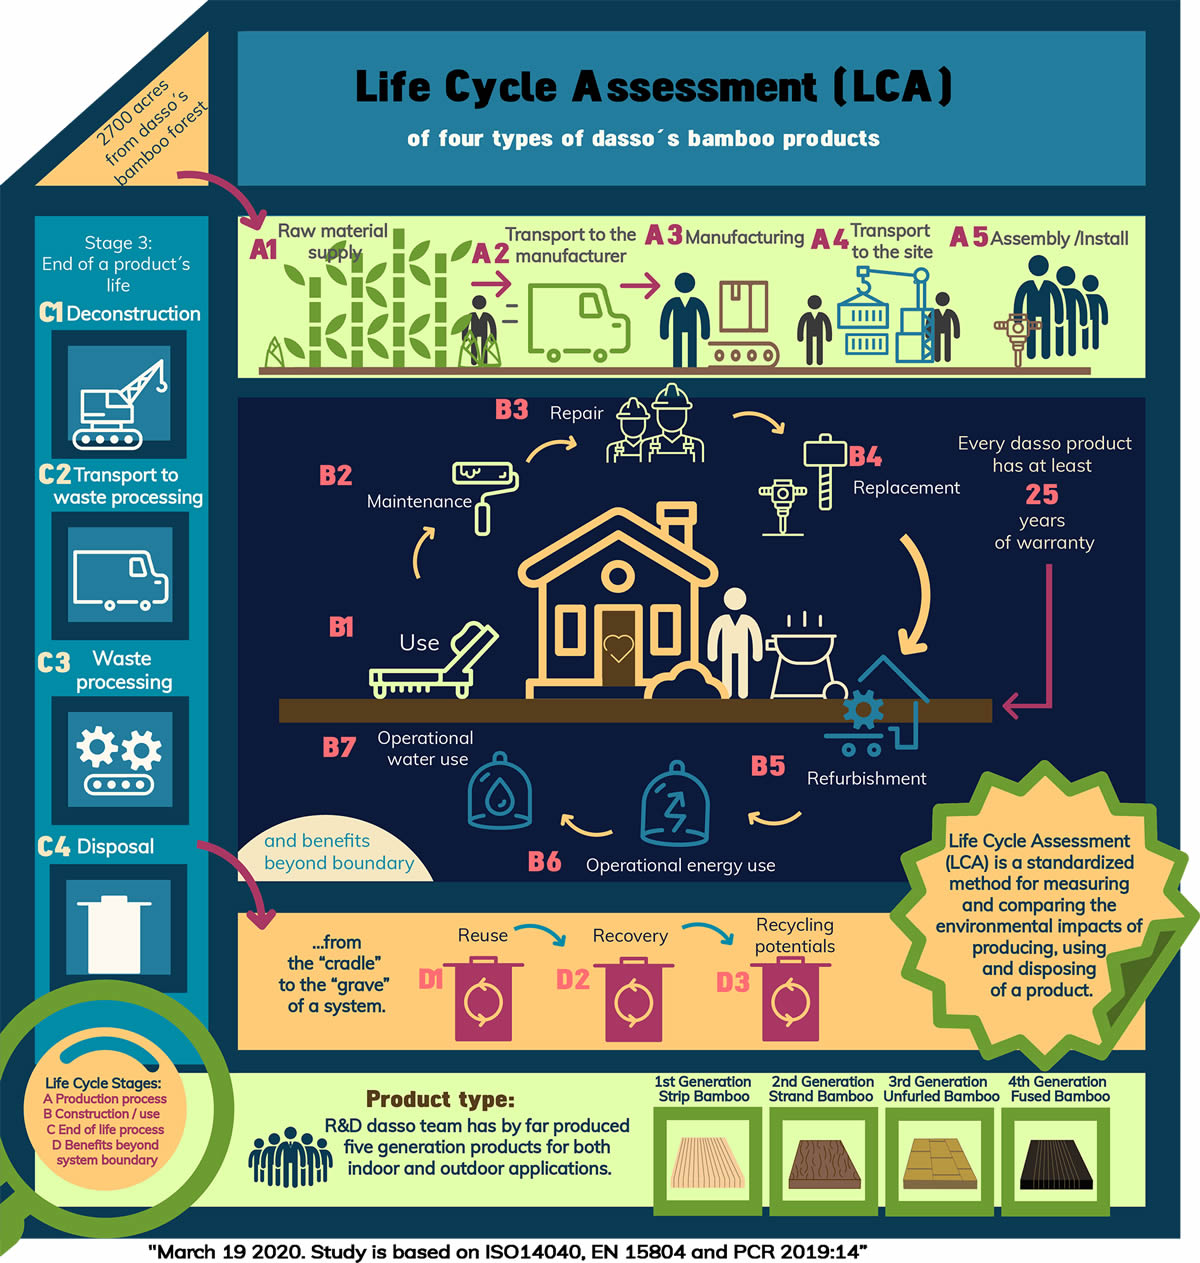 life cycle assessemnt of dassoxTR